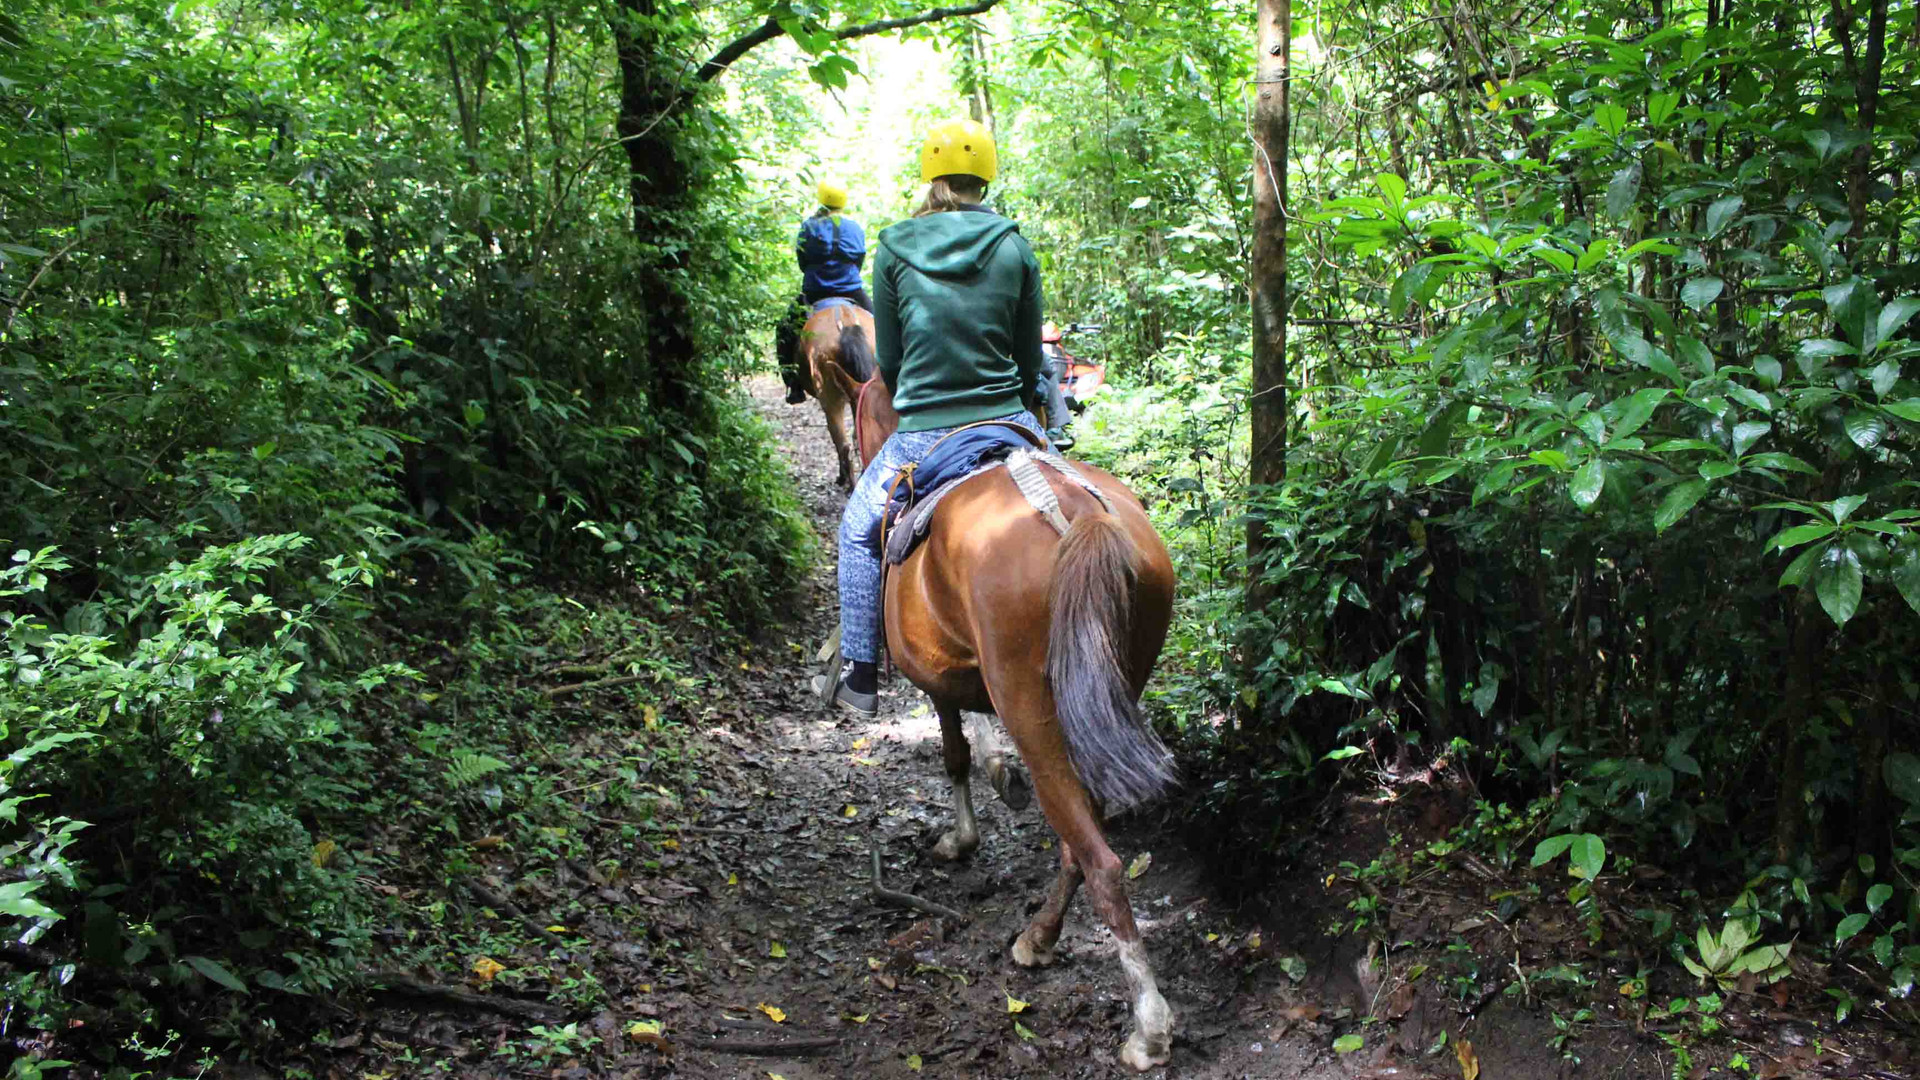 Monteverde Costa Rica guided Horseback riding tour riding on forest trail through rainforest guests wearing rain jackets and helmets